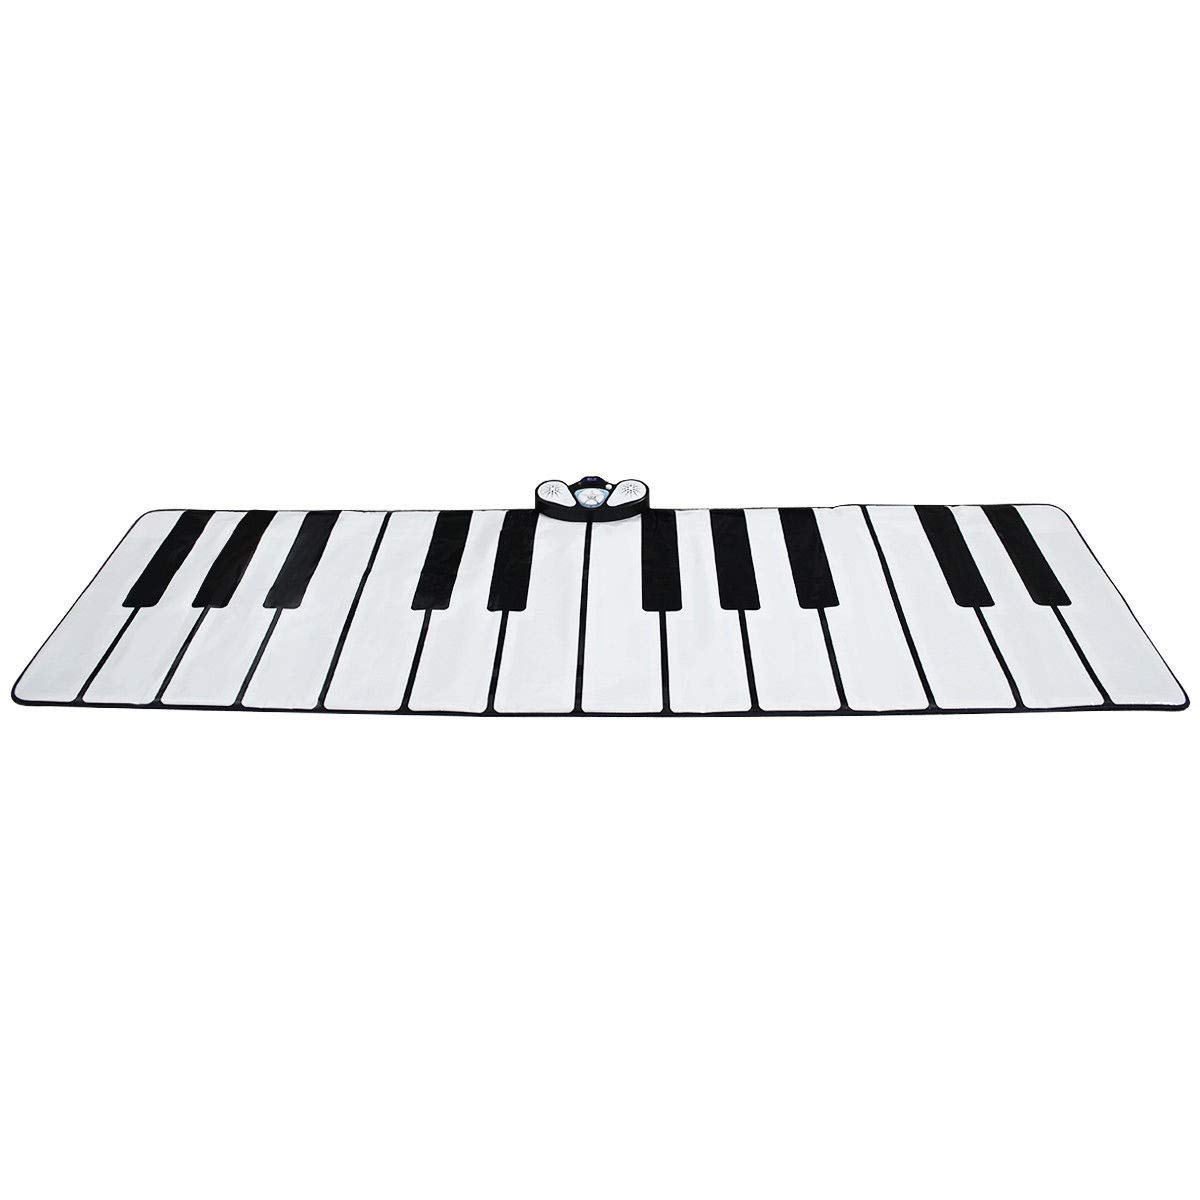 USA_Best_Seller 24 Key Gigantic Piano Keyboard with 9 Instrument Settings Music Portable Lightweight Kids Children Game Toy Dance Sing Play Creative White Black by USA_Best_Seller